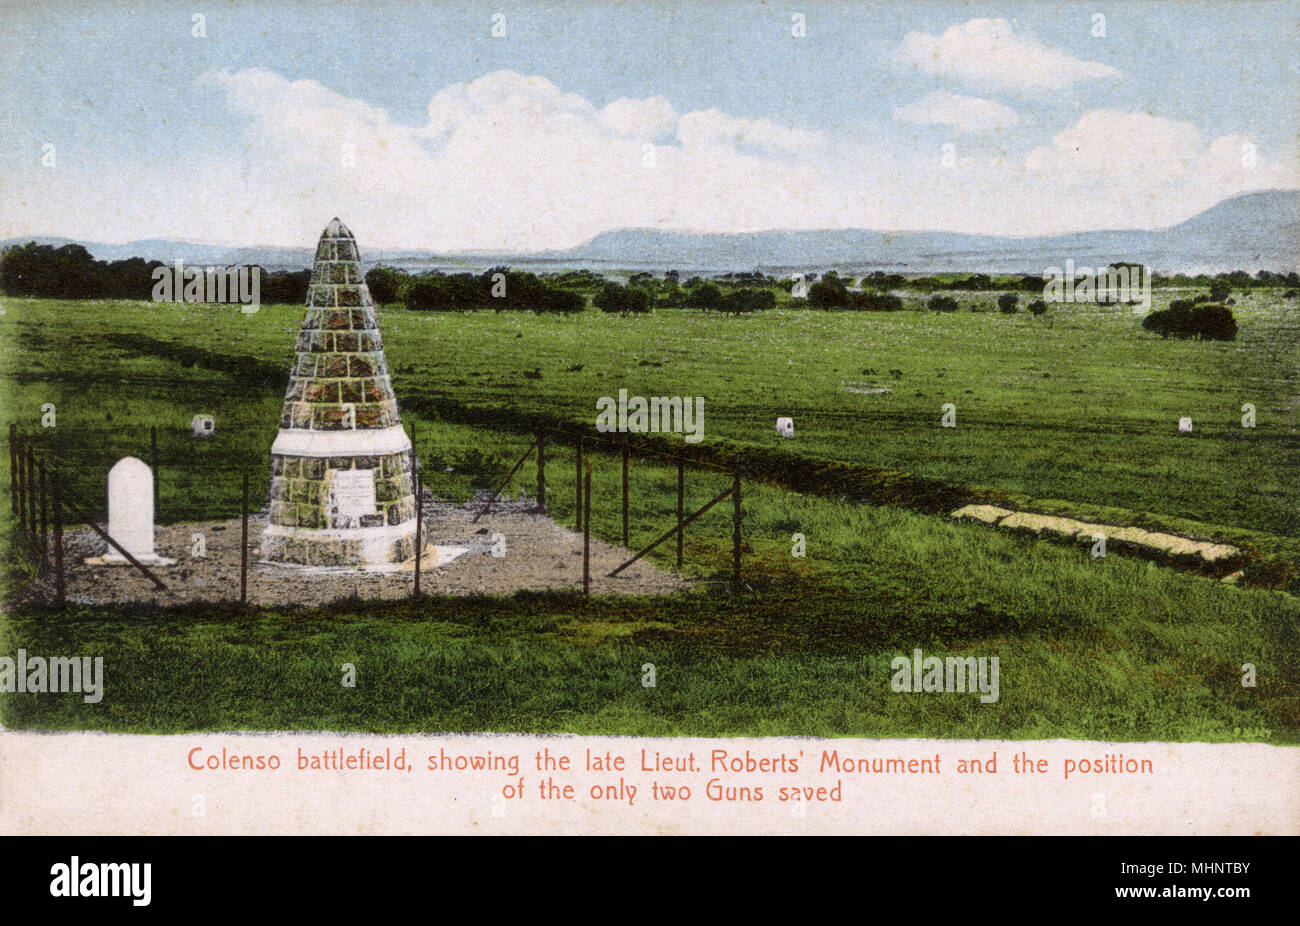 The Battlefield at Colenso - site of the heavy defeat of British forces by the Boers during the Second Boer War on 15th December 1899. The Monument to Lieutenant the Honourable Frederick Roberts (son of Field Marshal Lord Roberts) and positions of the only two guns saved can be seen in this view.     Date: circa 1910s - Stock Image